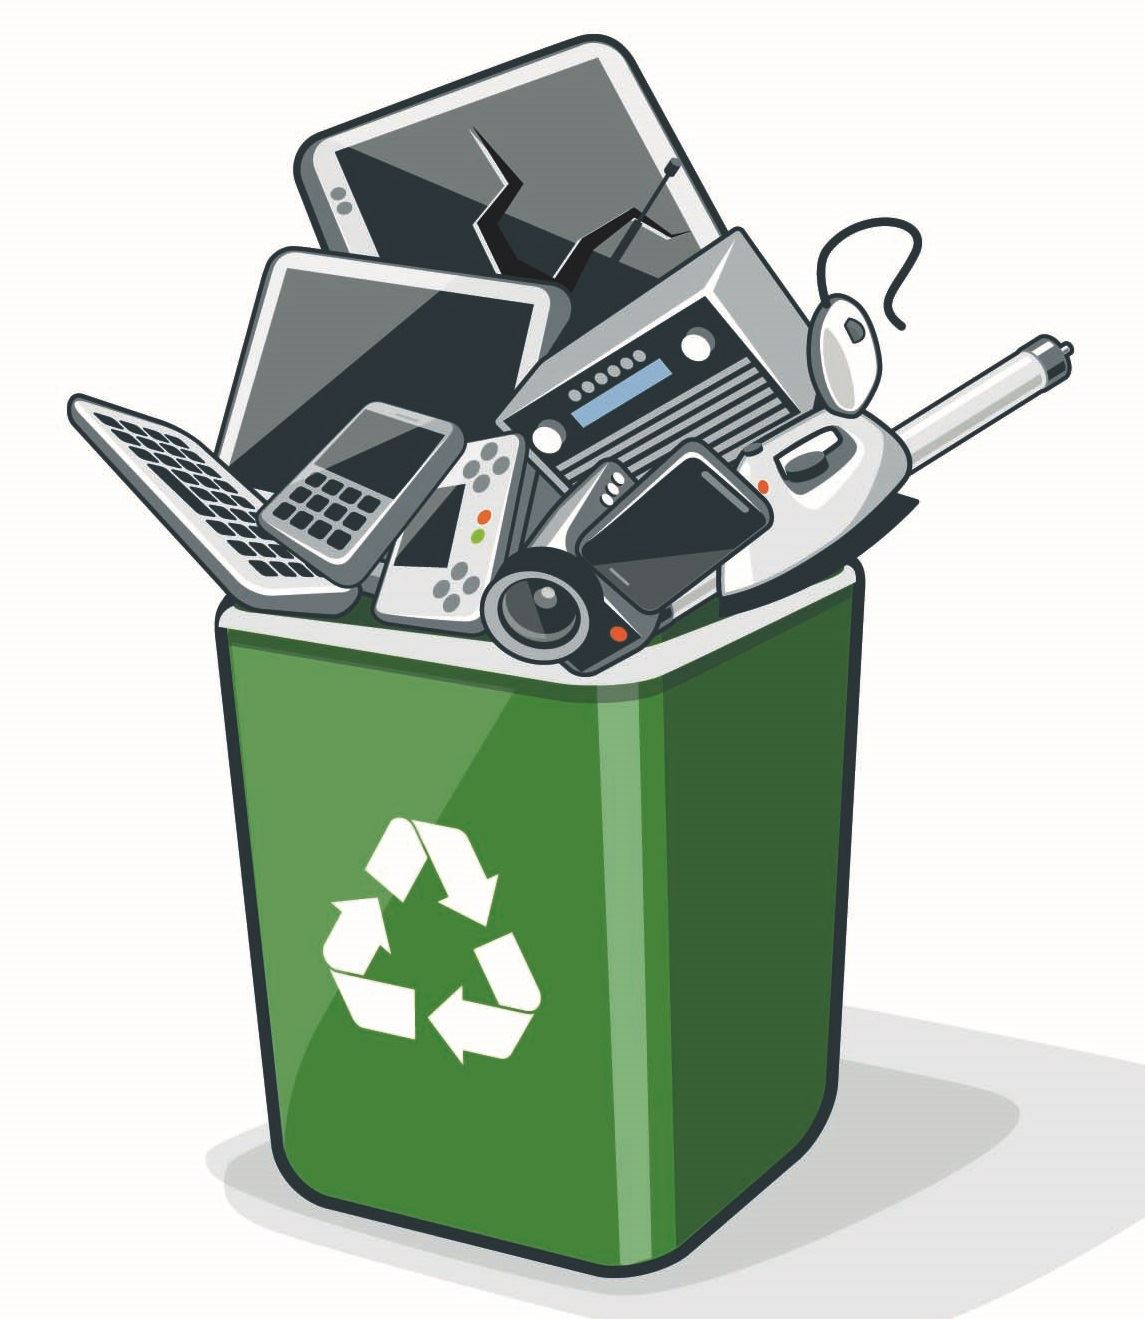 image - electronics recycling